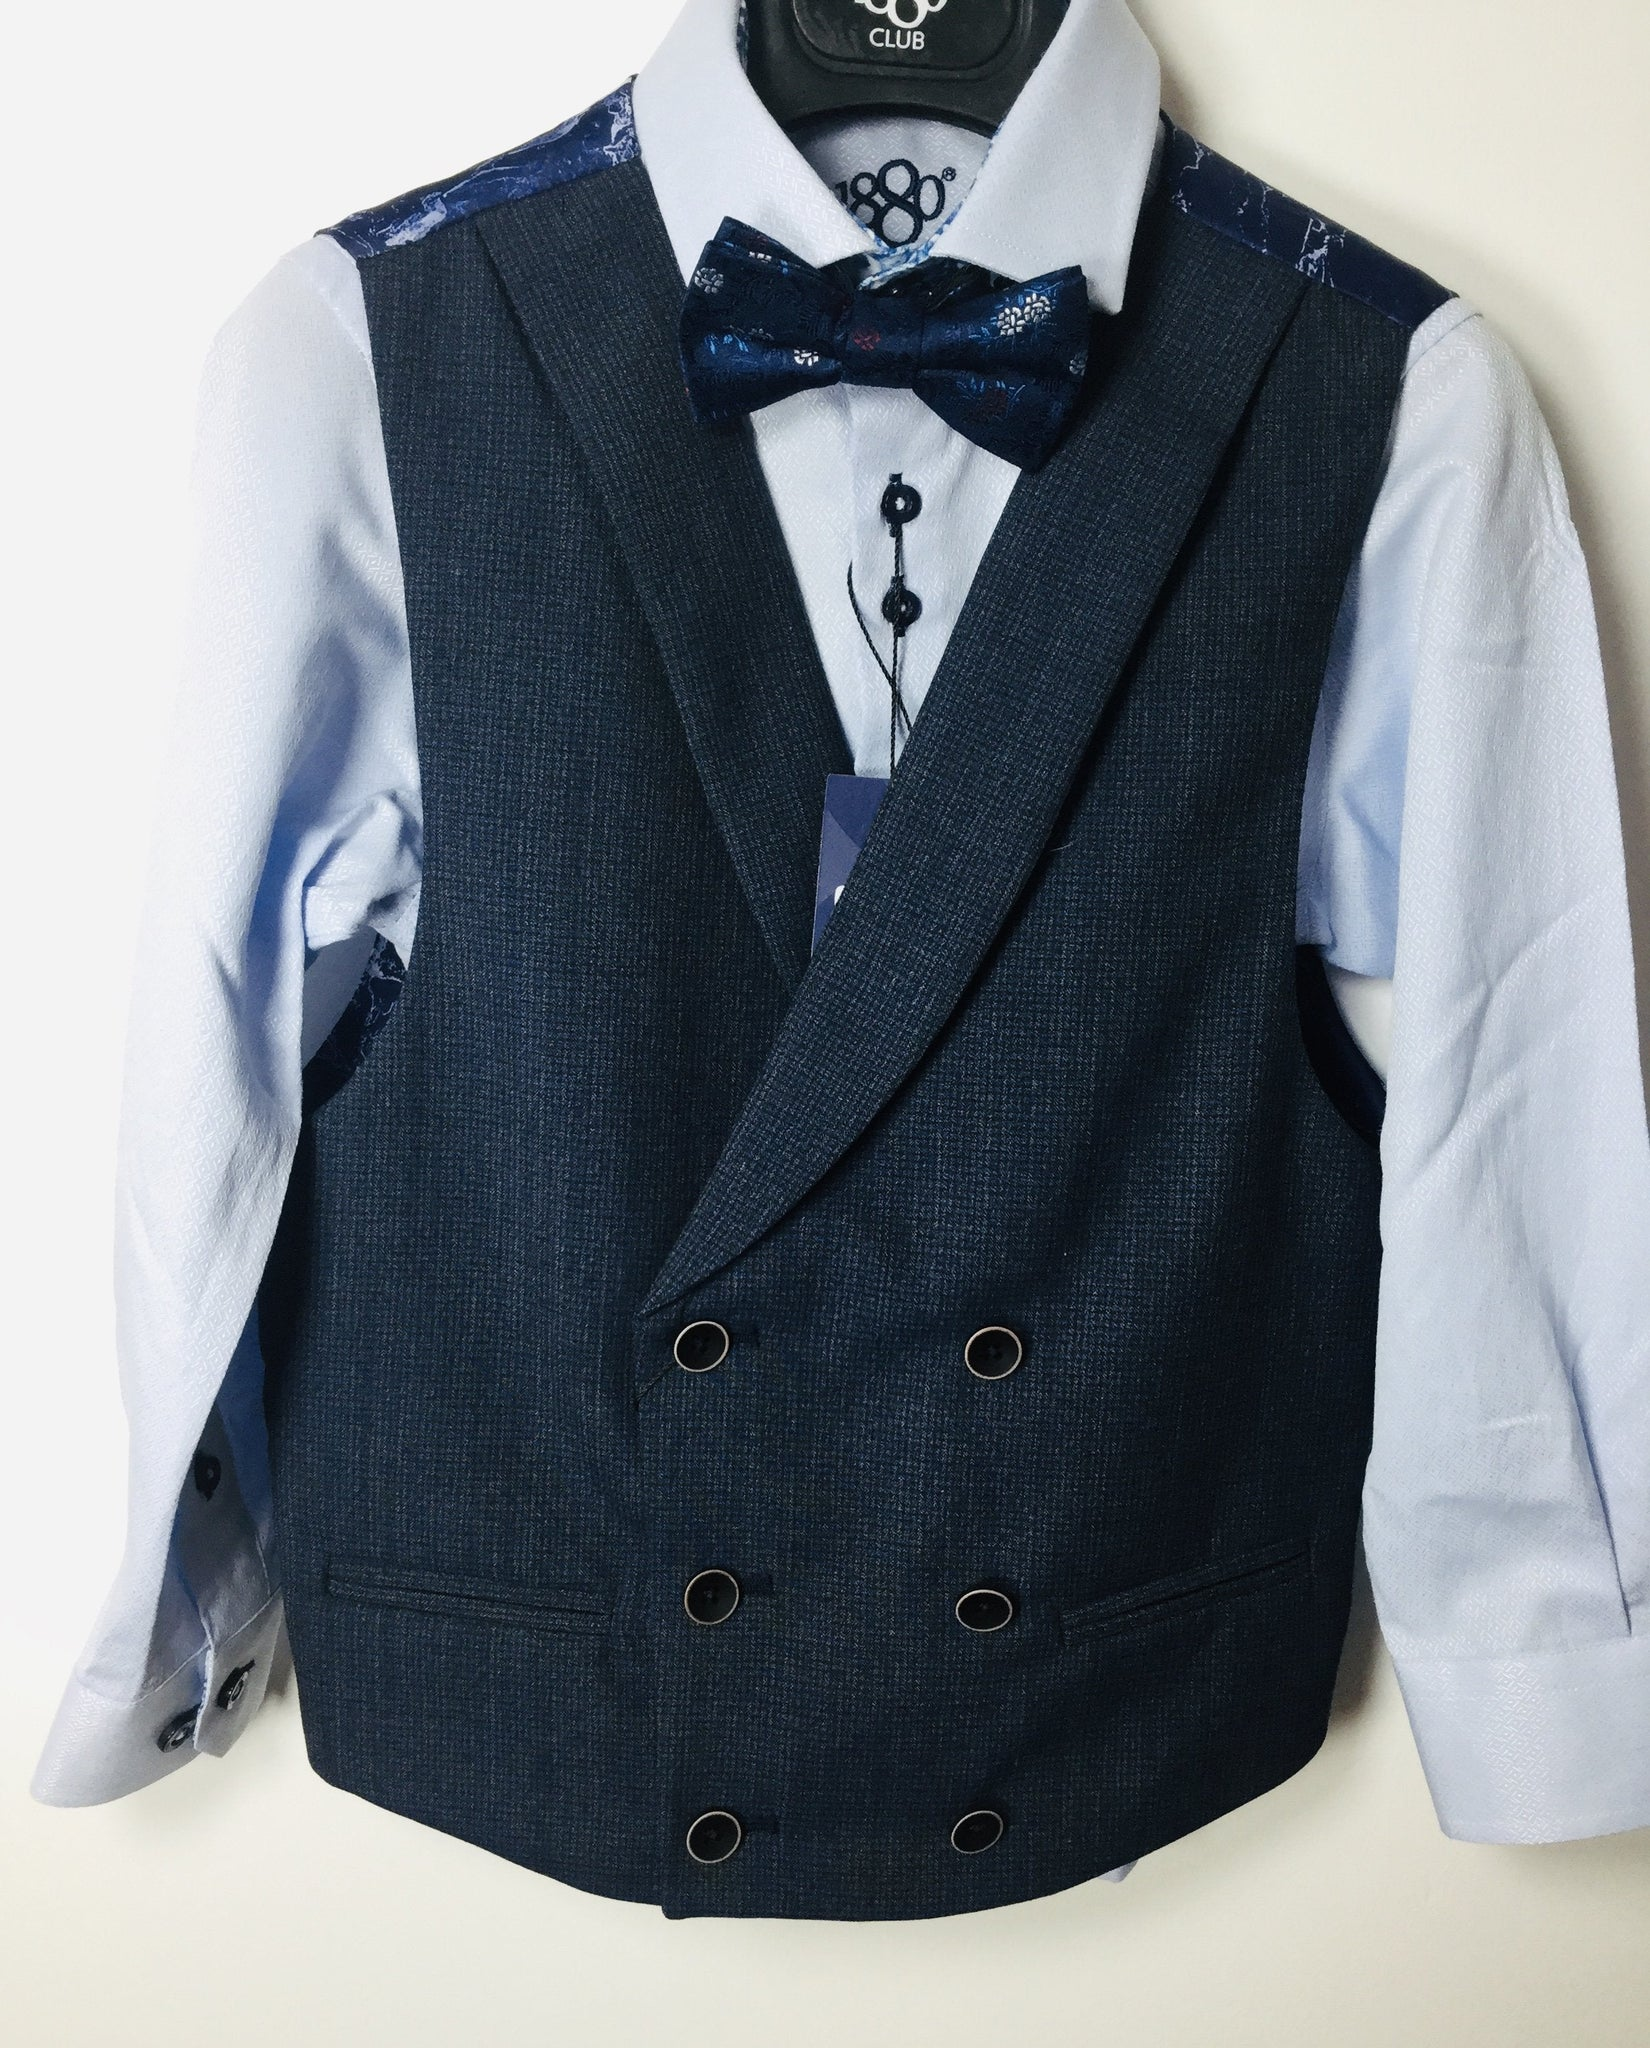 1880 CLUB BOYS NAVY/BLUE DOUBLE BREASTED WAISTCOAT MAGHERAFELT